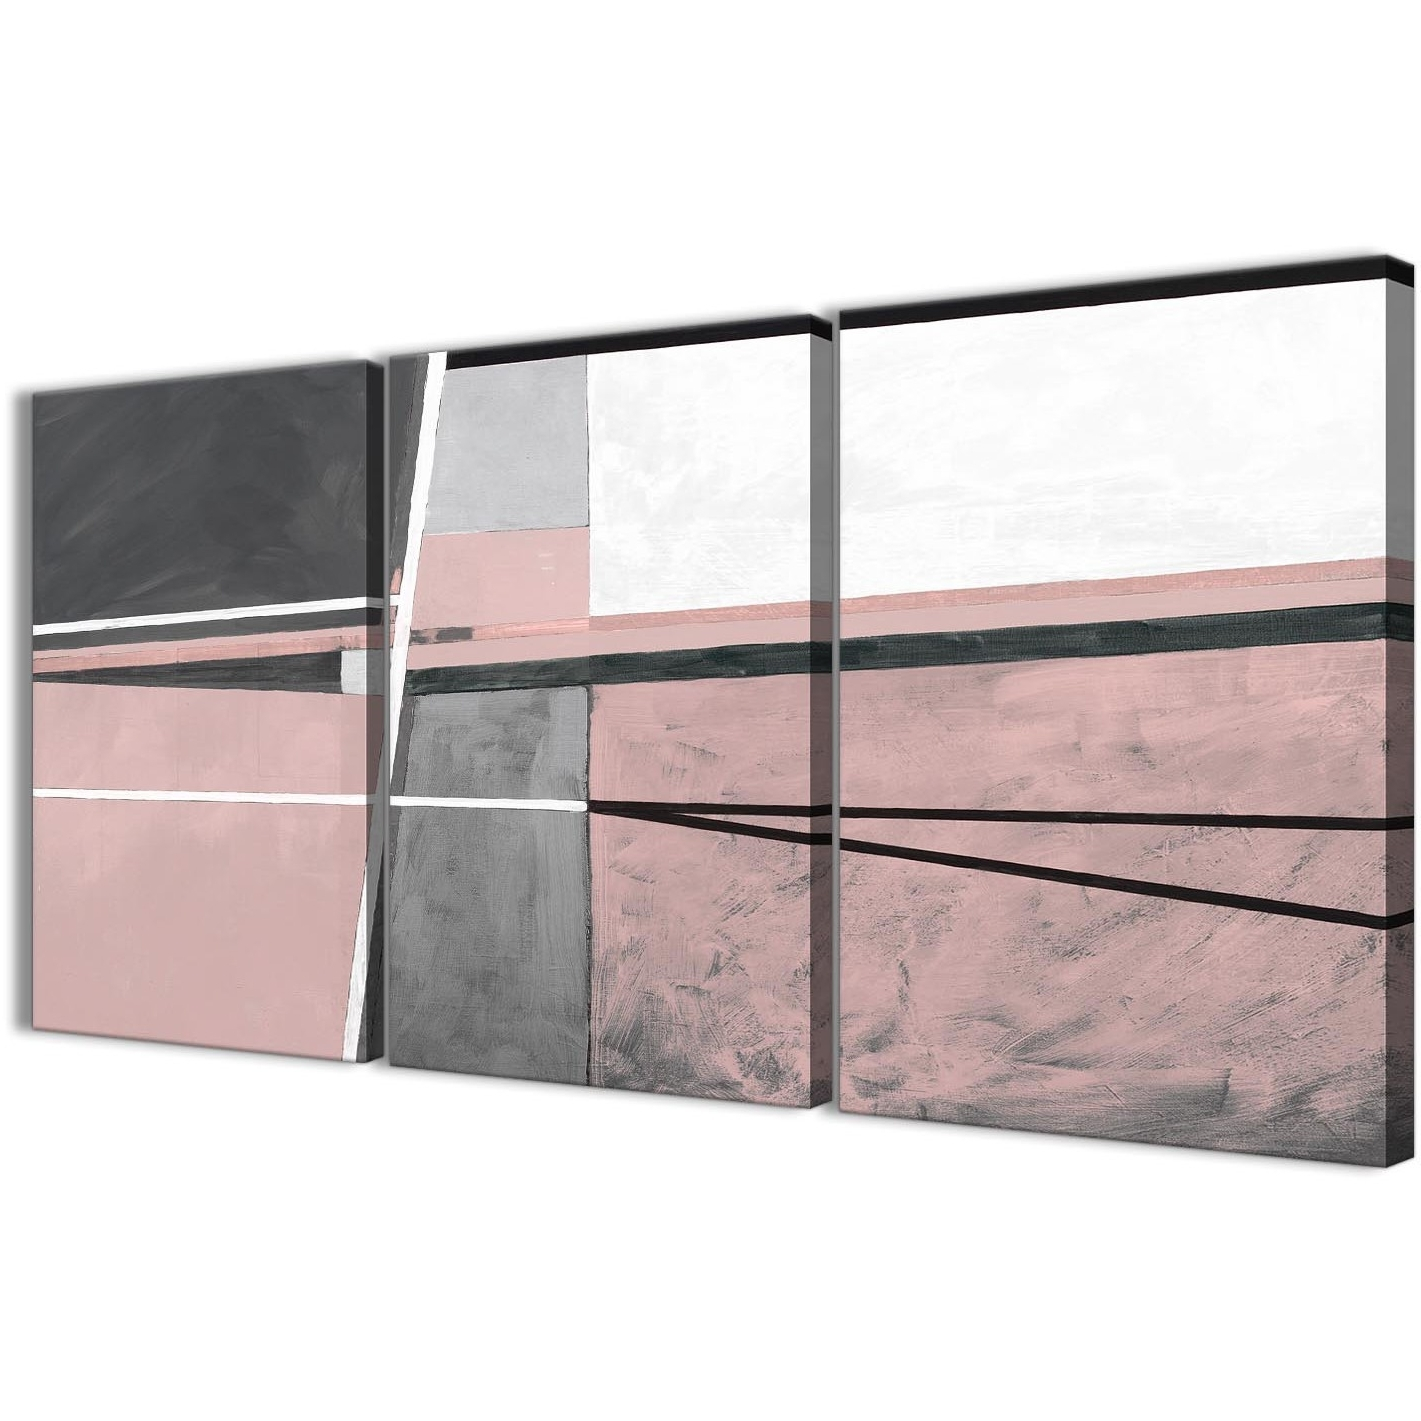 Most Recent 3 Panel Blush Pink Grey Painting Kitchen Canvas Wall Art In Grey Abstract Canvas Wall Art (View 13 of 15)